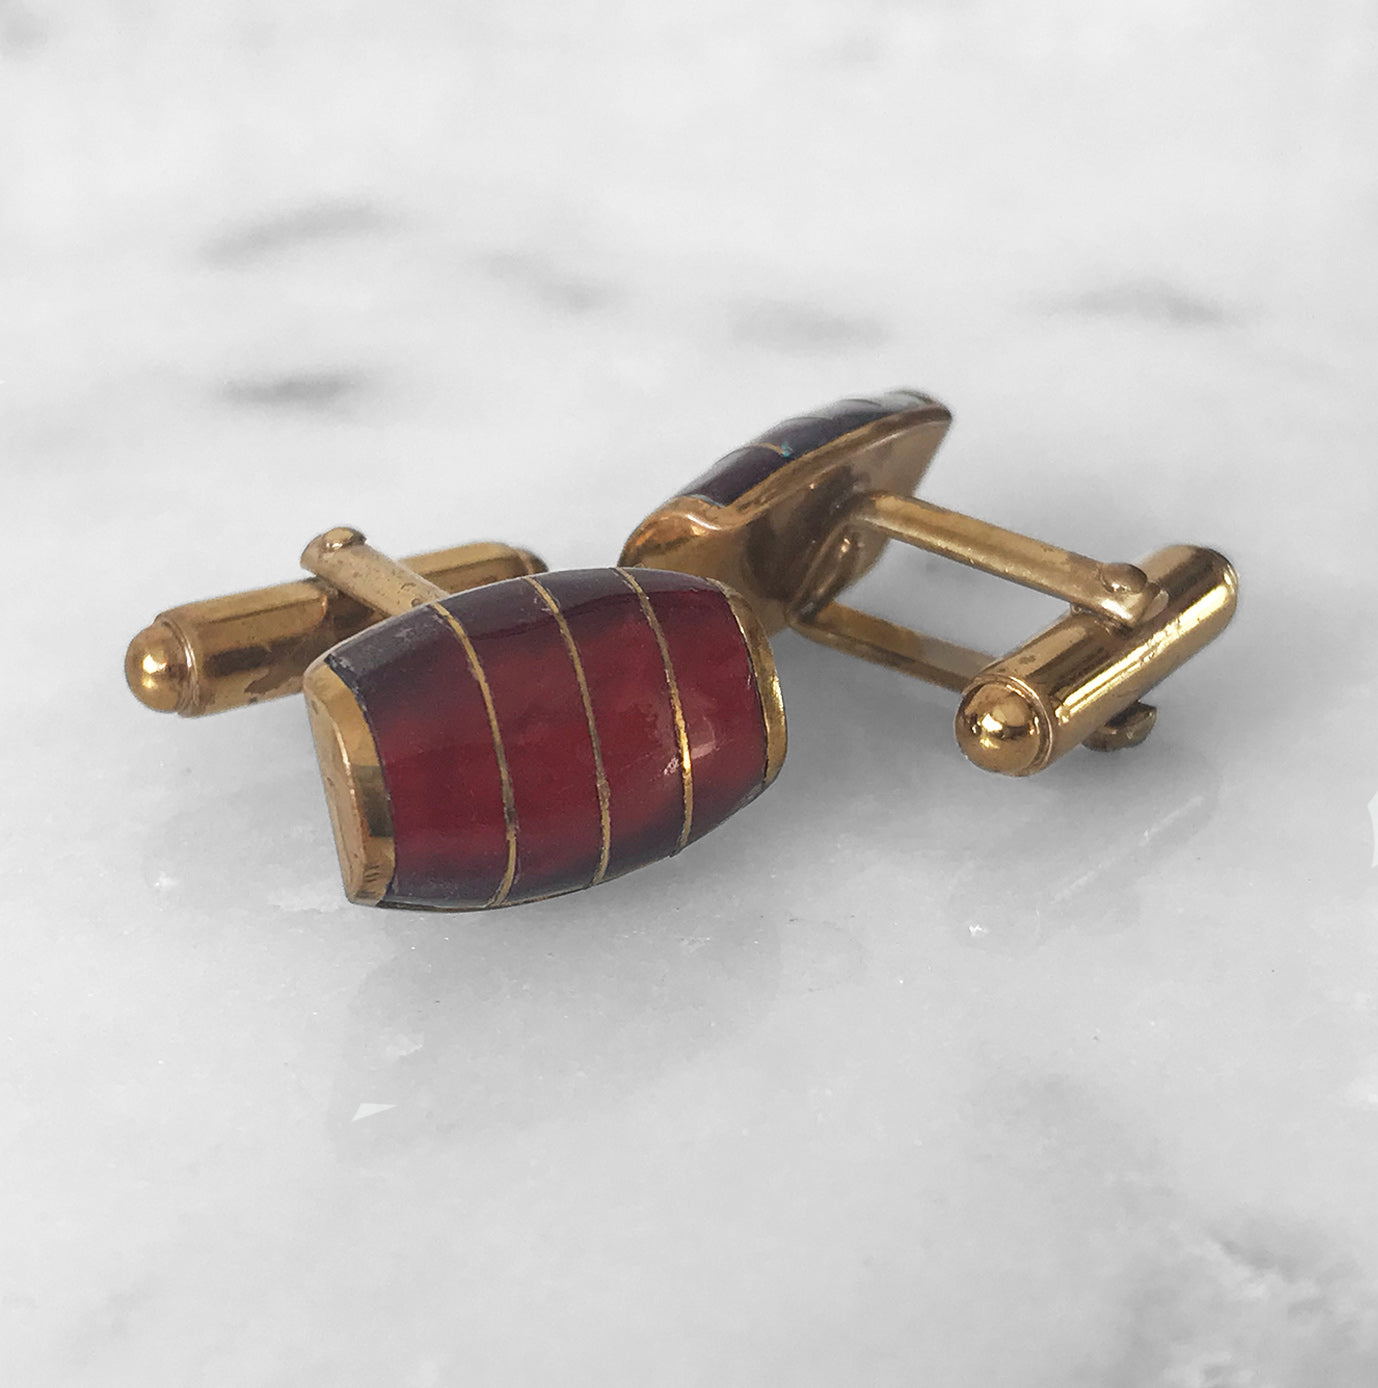 Vintage Red and Gold tone Barrel Cufflinks that catch the light nicely - SHOP NOW - Intovintage.co.uk.